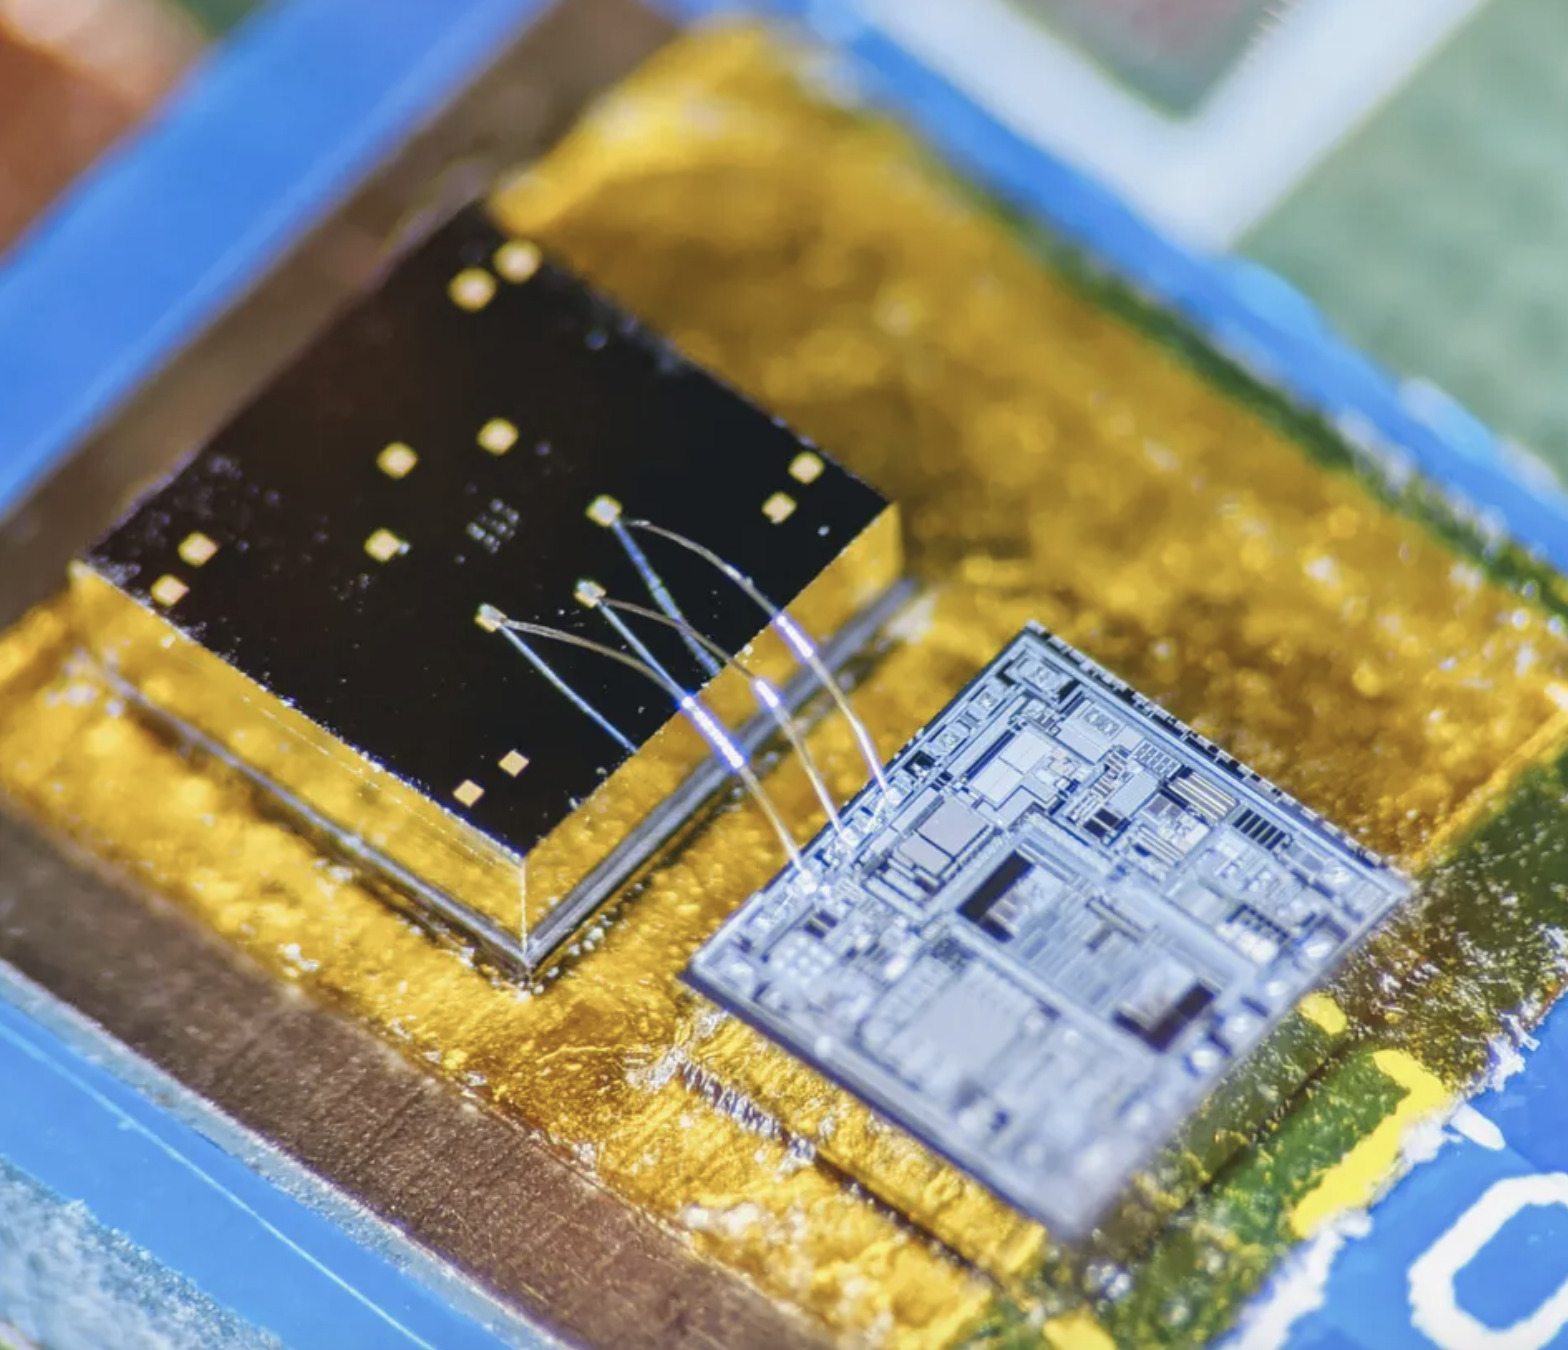 Super Sensor On A Chip can Monitor the Heart and Lungs using Sounds/Vibrations